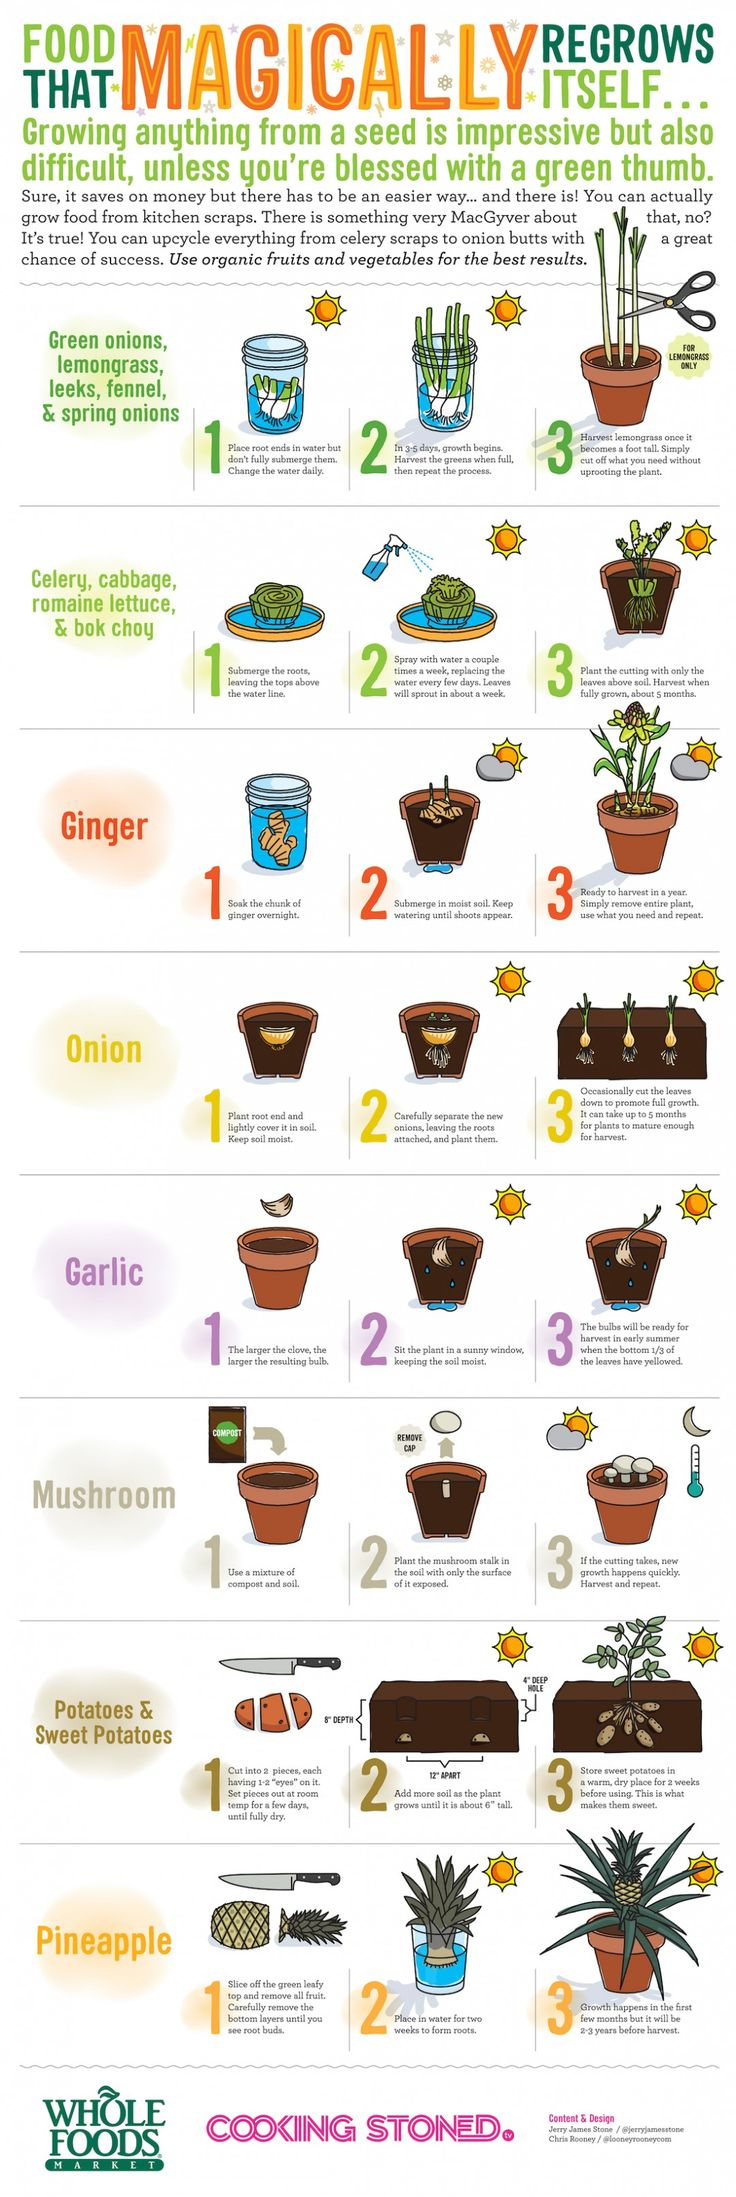 Food That Magically Regrows Itself from Kitchen ScrapsREALfarmacy.com | Healthy News and Information